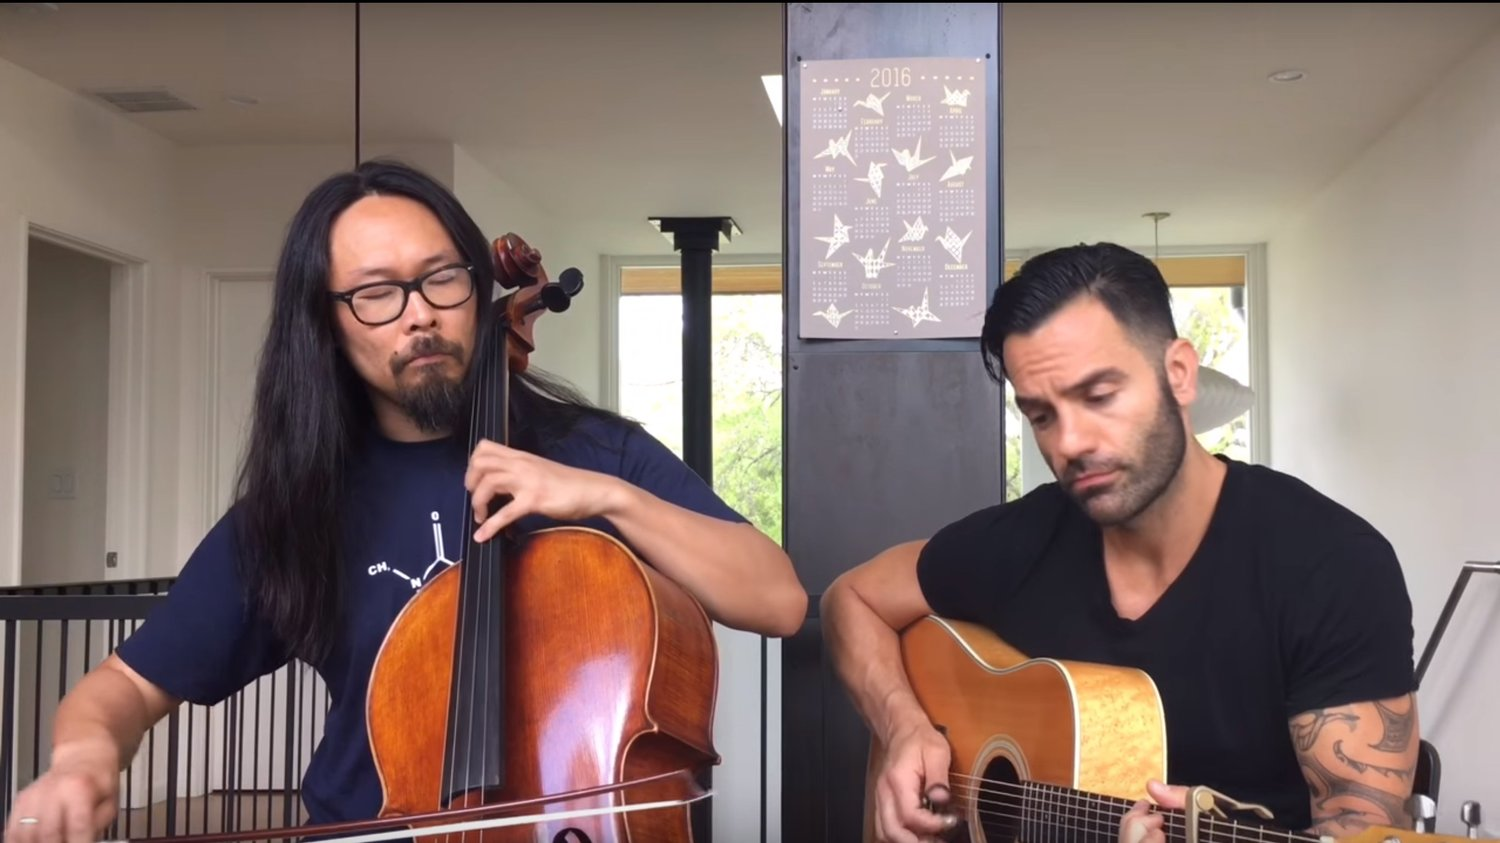 BWW Interview: Ramin Karimloo Reflects on The Avett Brothers, His Friendship with Joe Kwon, and Working with Andrew Lloyd Webber in Advance of His Raleigh Benefit Concert